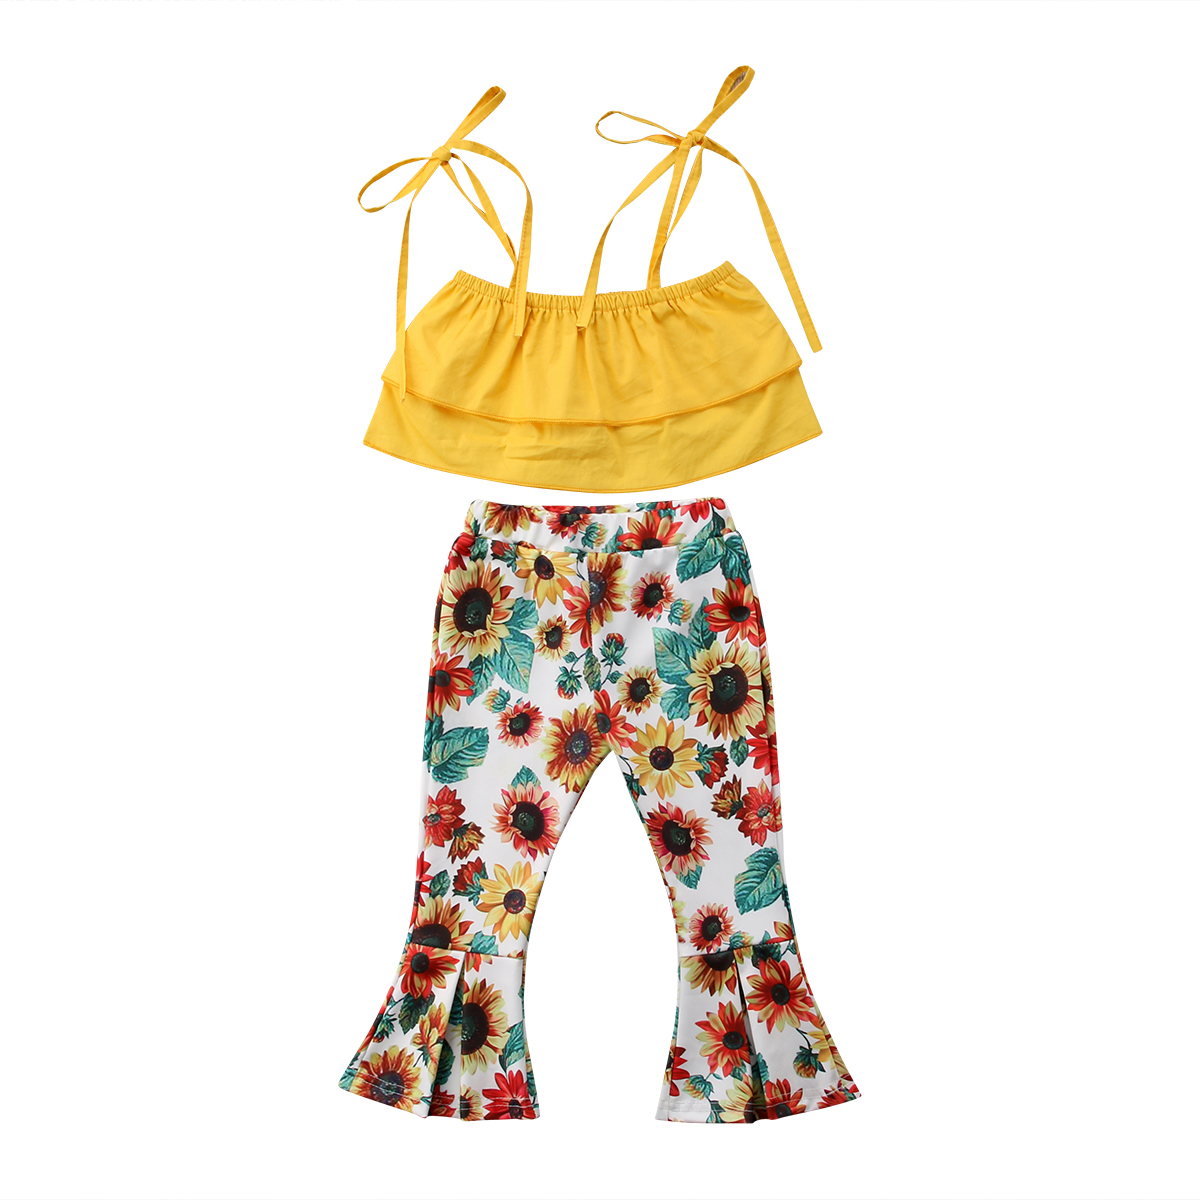 Pudcoco 2018 Brand New Kids Baby Girls Sunflower Clothing Set Yellow T-shirt Tops+Floral Flare Pants Outfits 2PCS Set